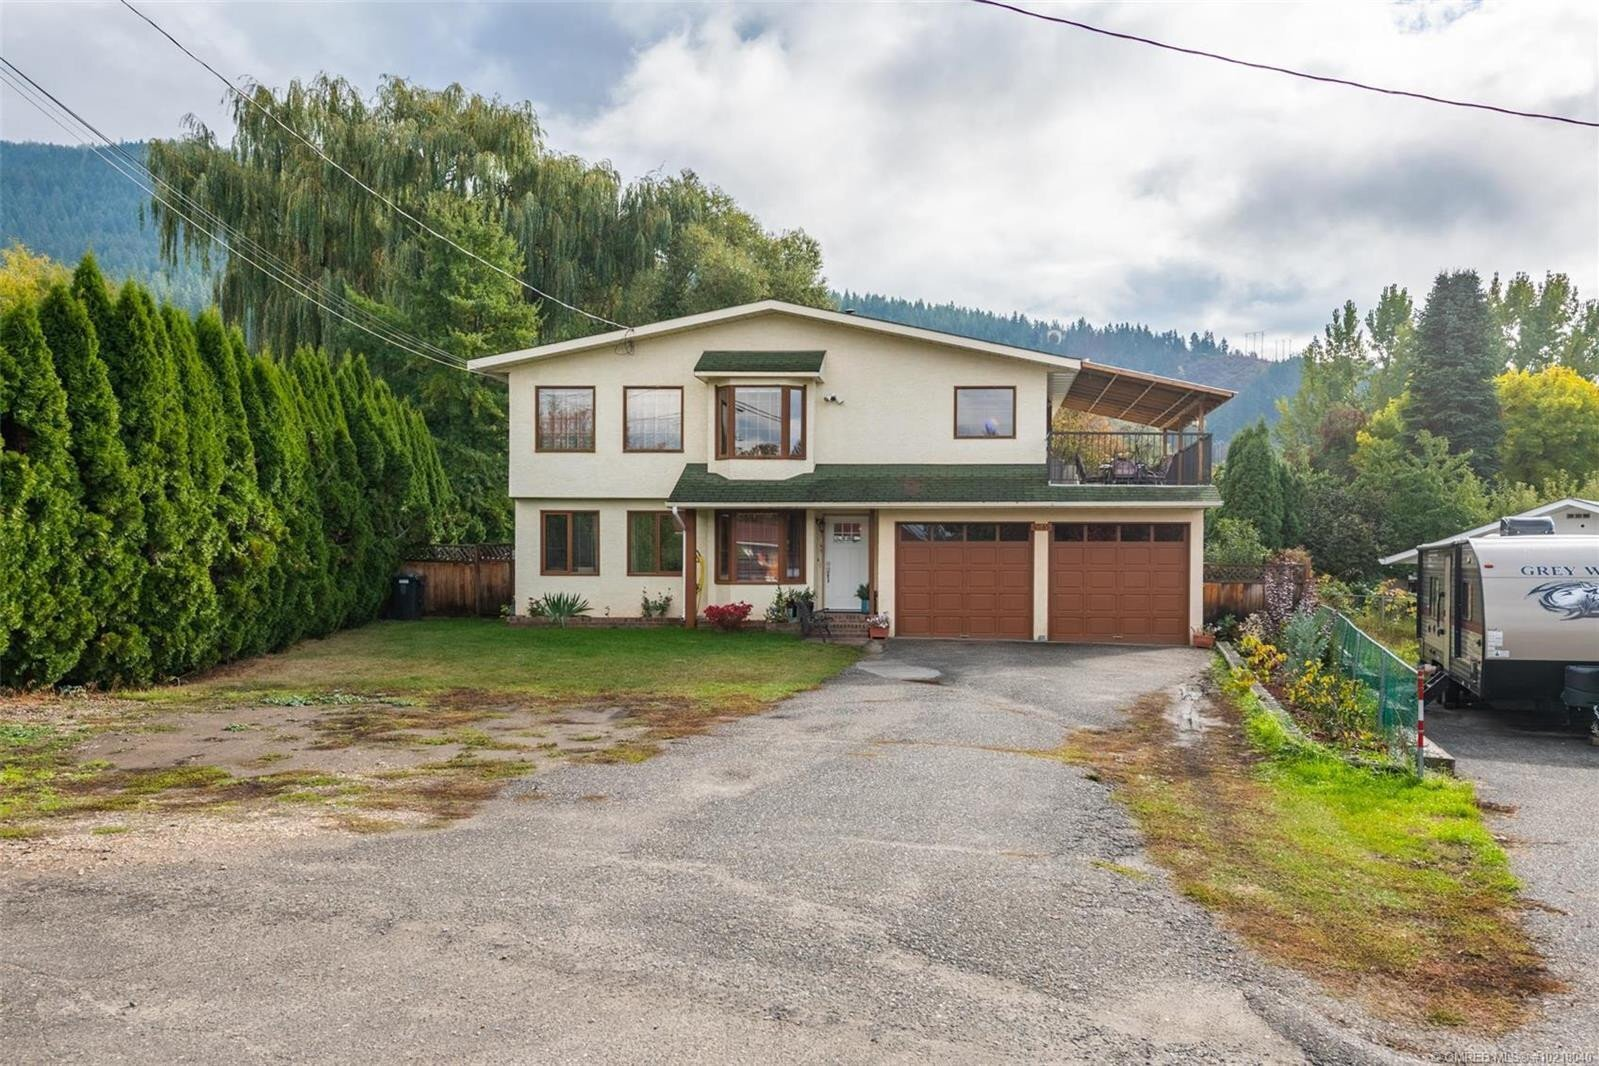 House for sale at 4545 Bolduc Rd Vernon British Columbia - MLS: 10218040